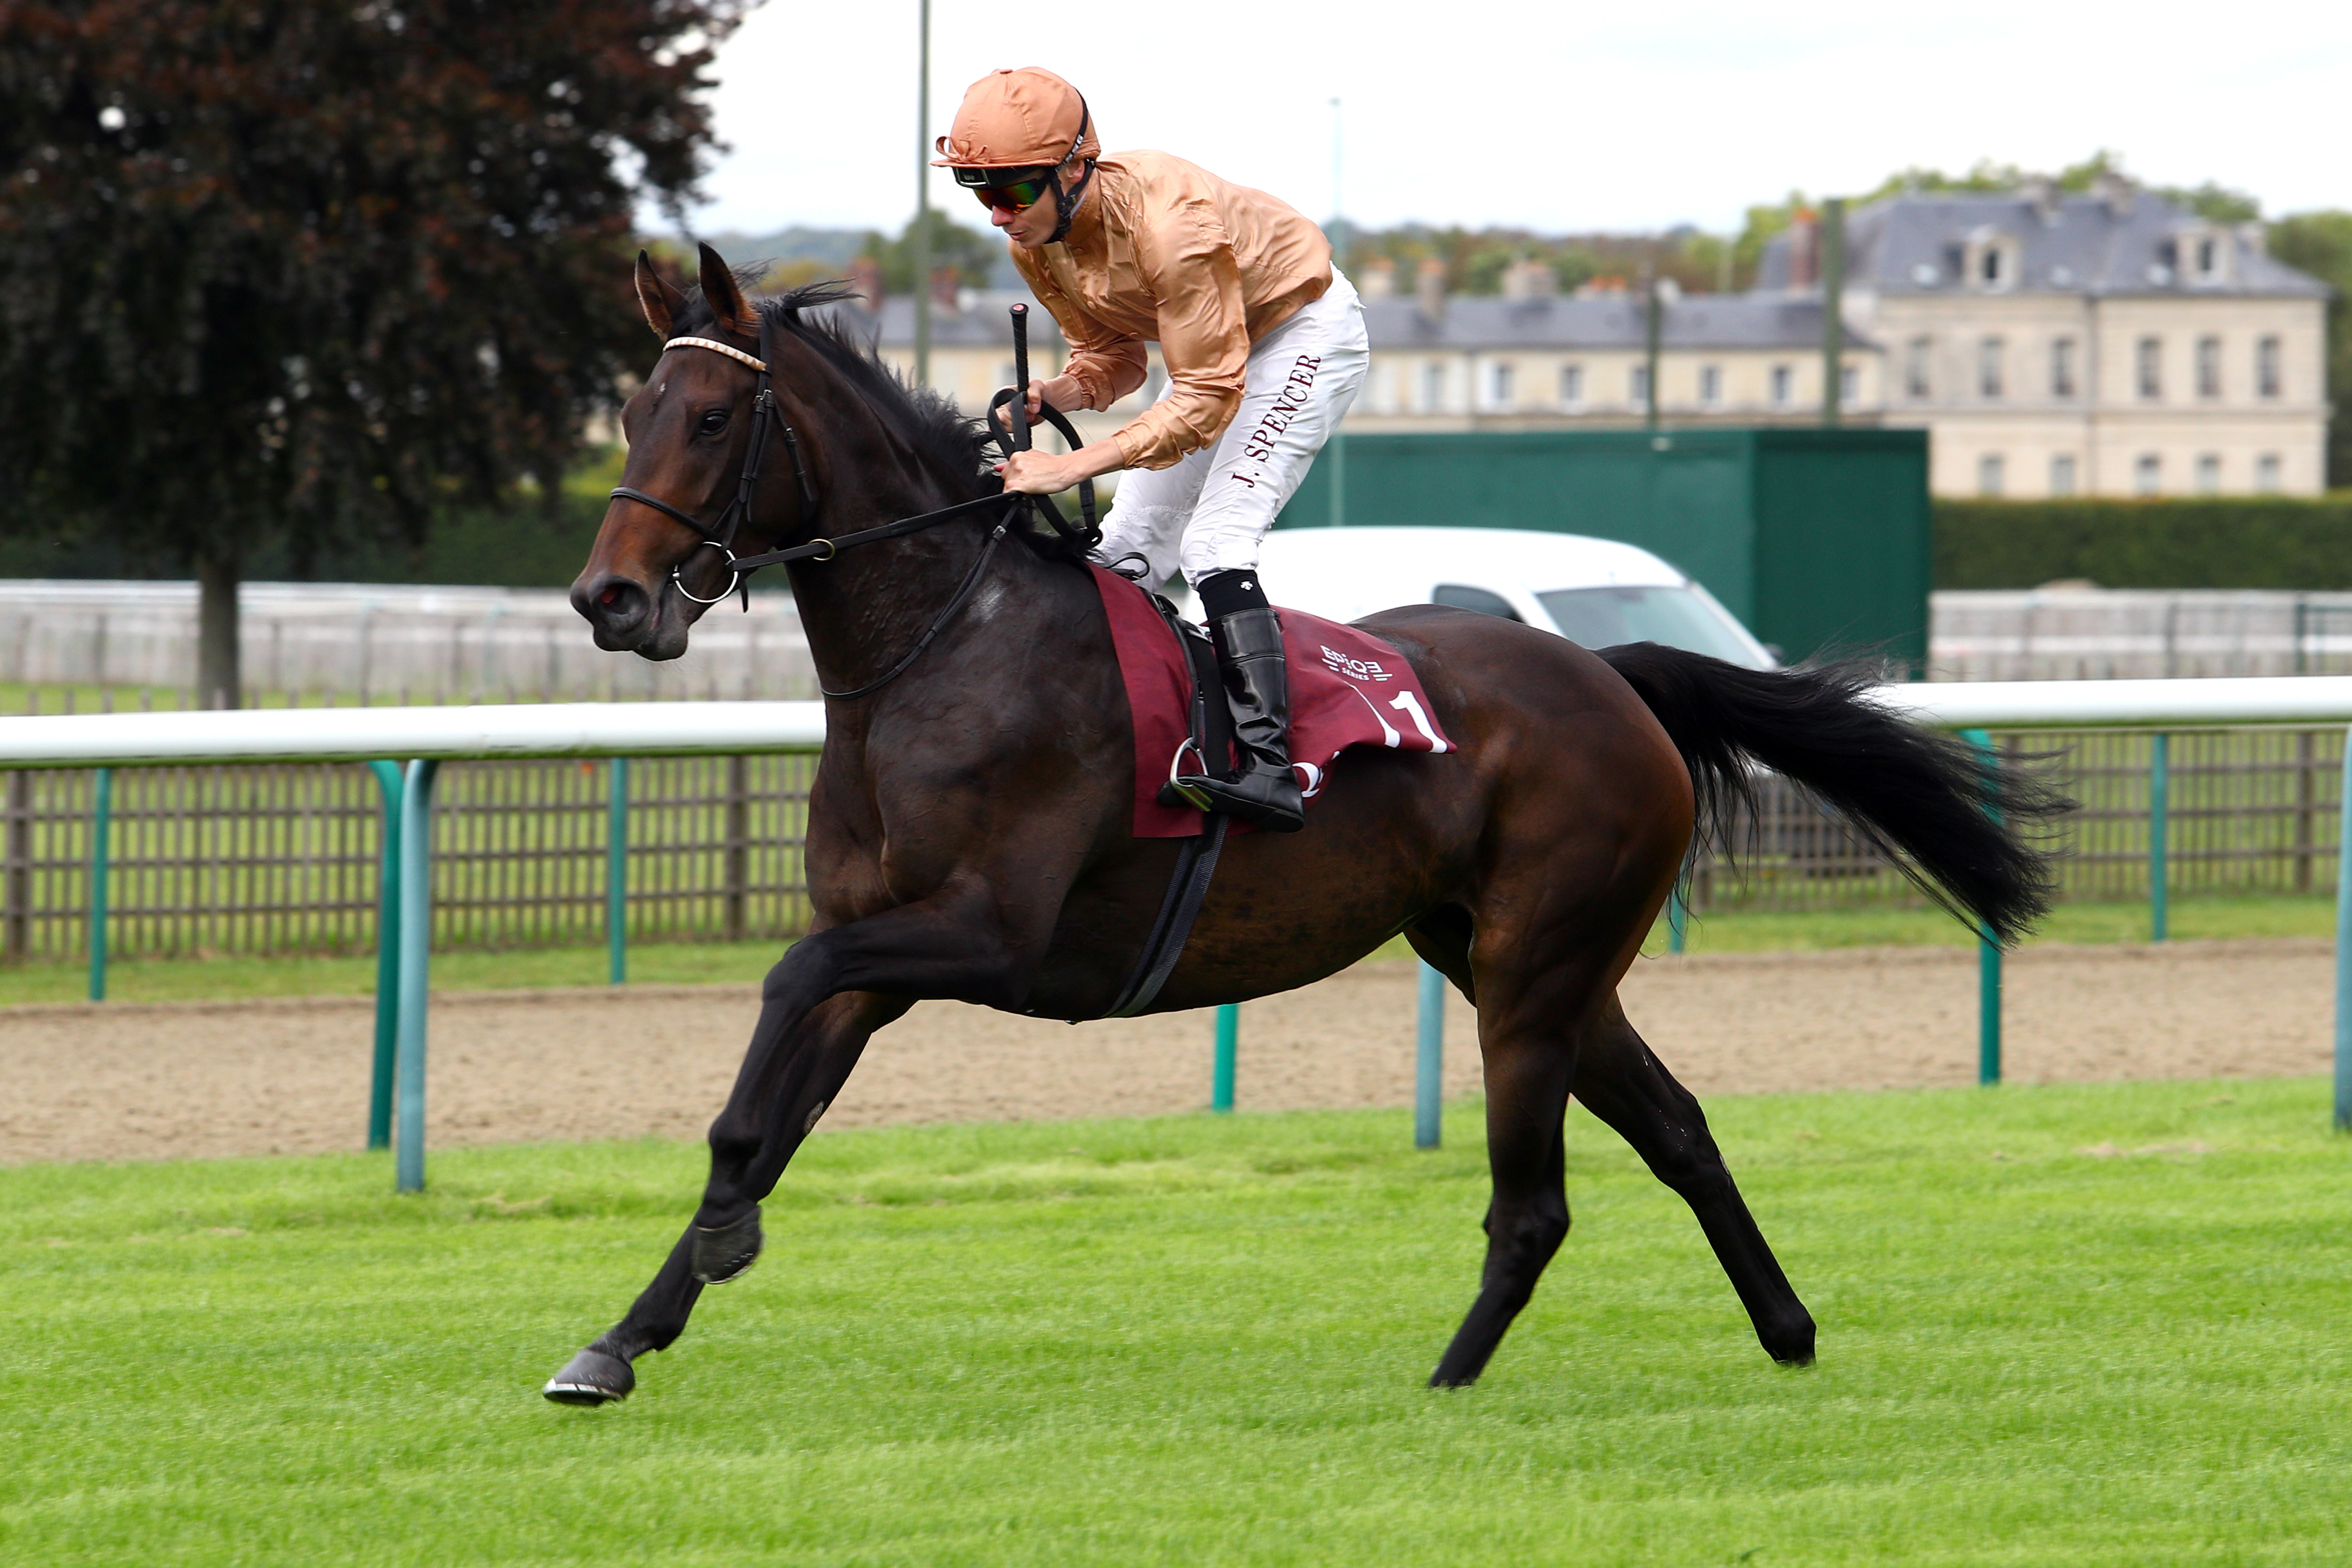 QATAR LILLIE LANGTRY STAKES (GR2) - Nathaniel, puissance trois